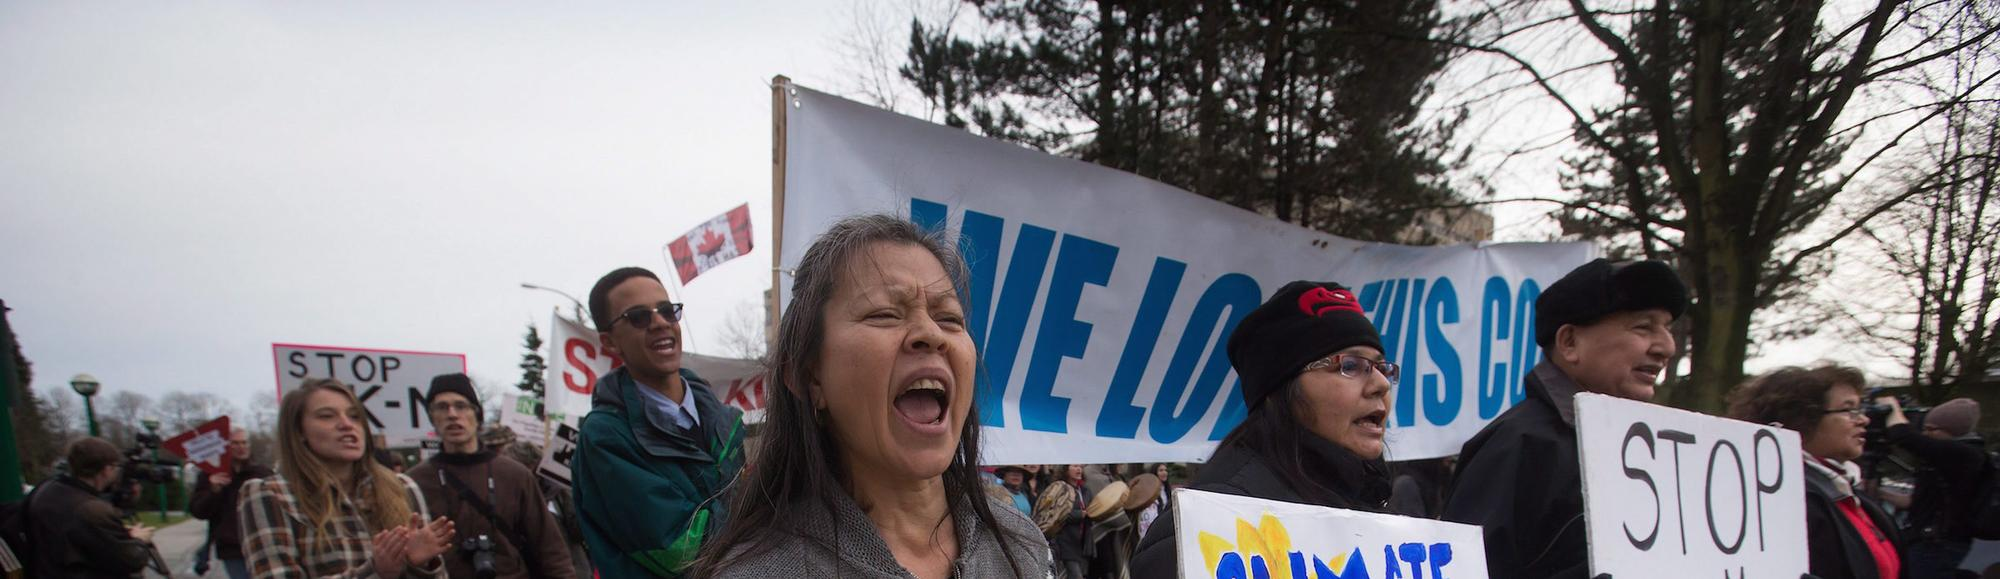 Protesters Accuse Trudeau of Broken Promises as BC Pipeline Review Forges Ahead